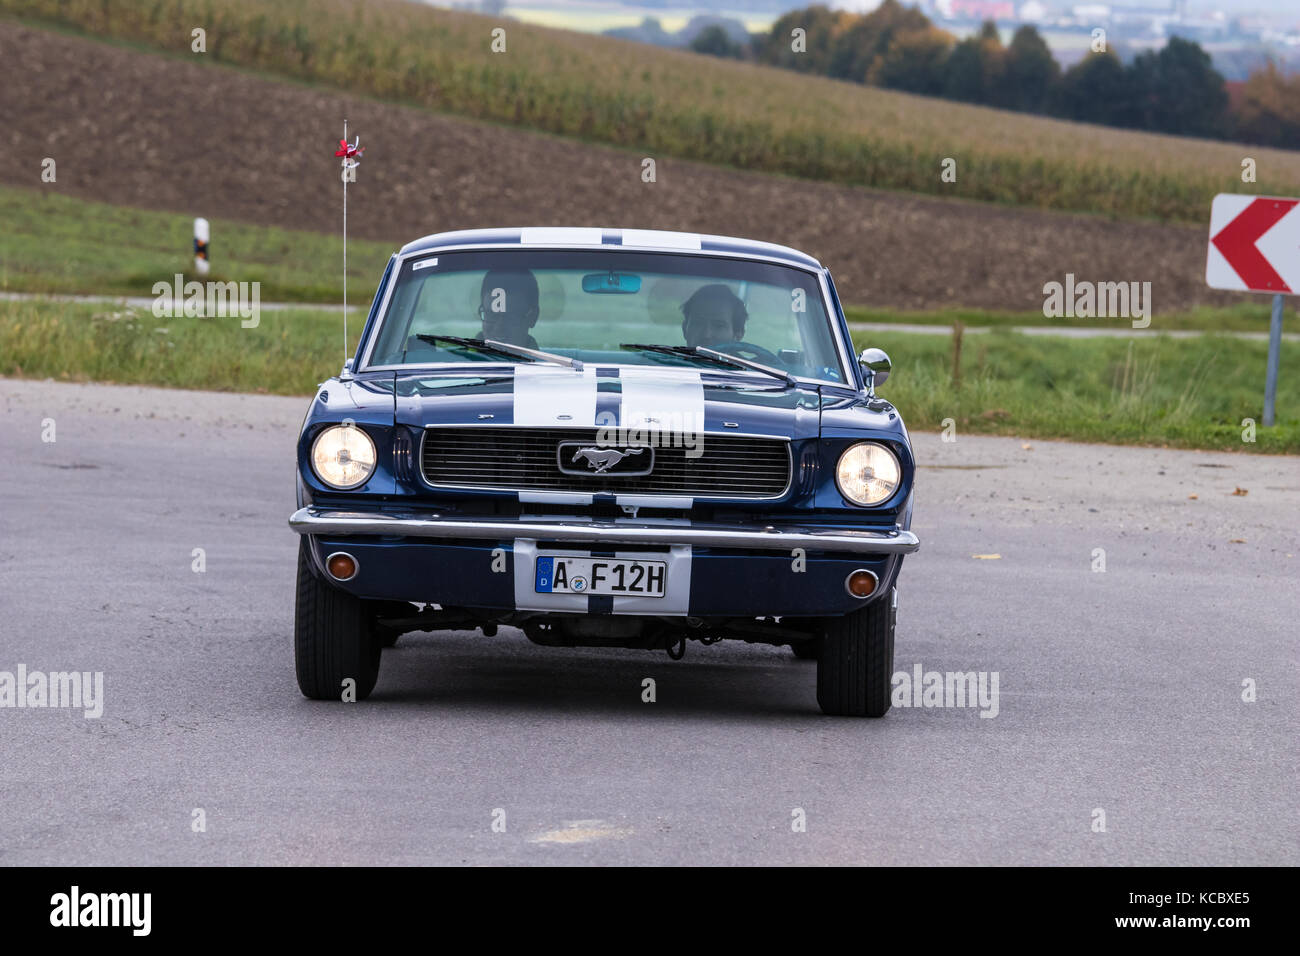 augsburg germany october 1 2017 ford mustang oldtimer car at the stock photo royalty free. Black Bedroom Furniture Sets. Home Design Ideas